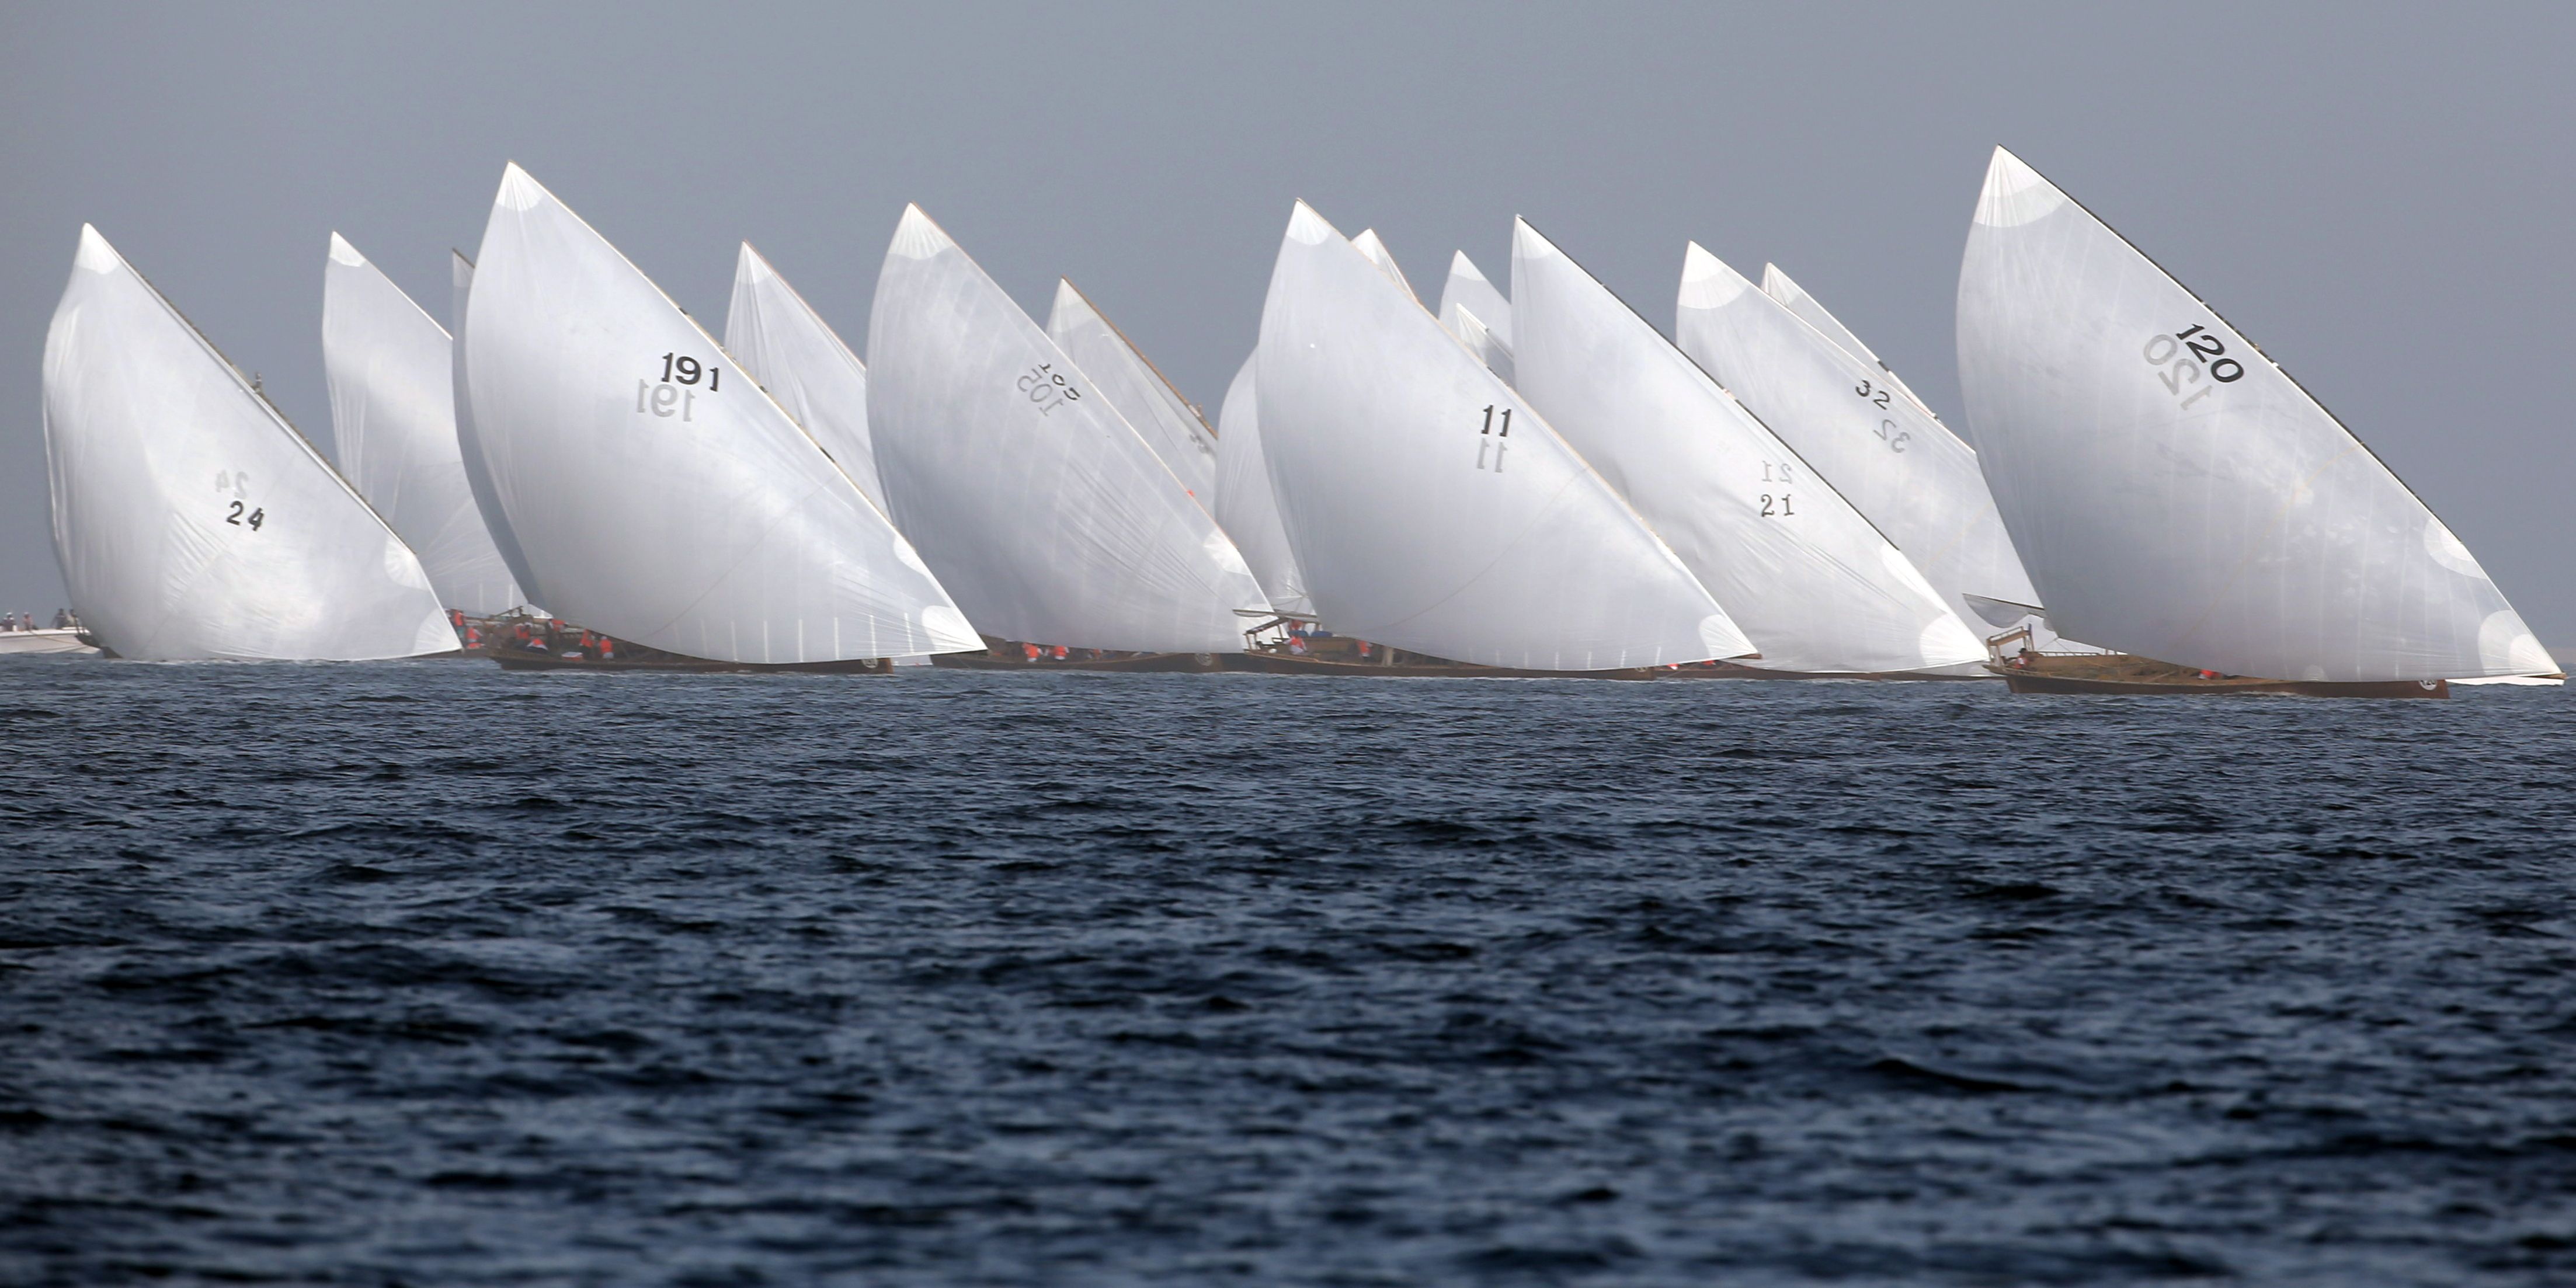 106 Boat to Participate in Al Gaffal Race on Friday